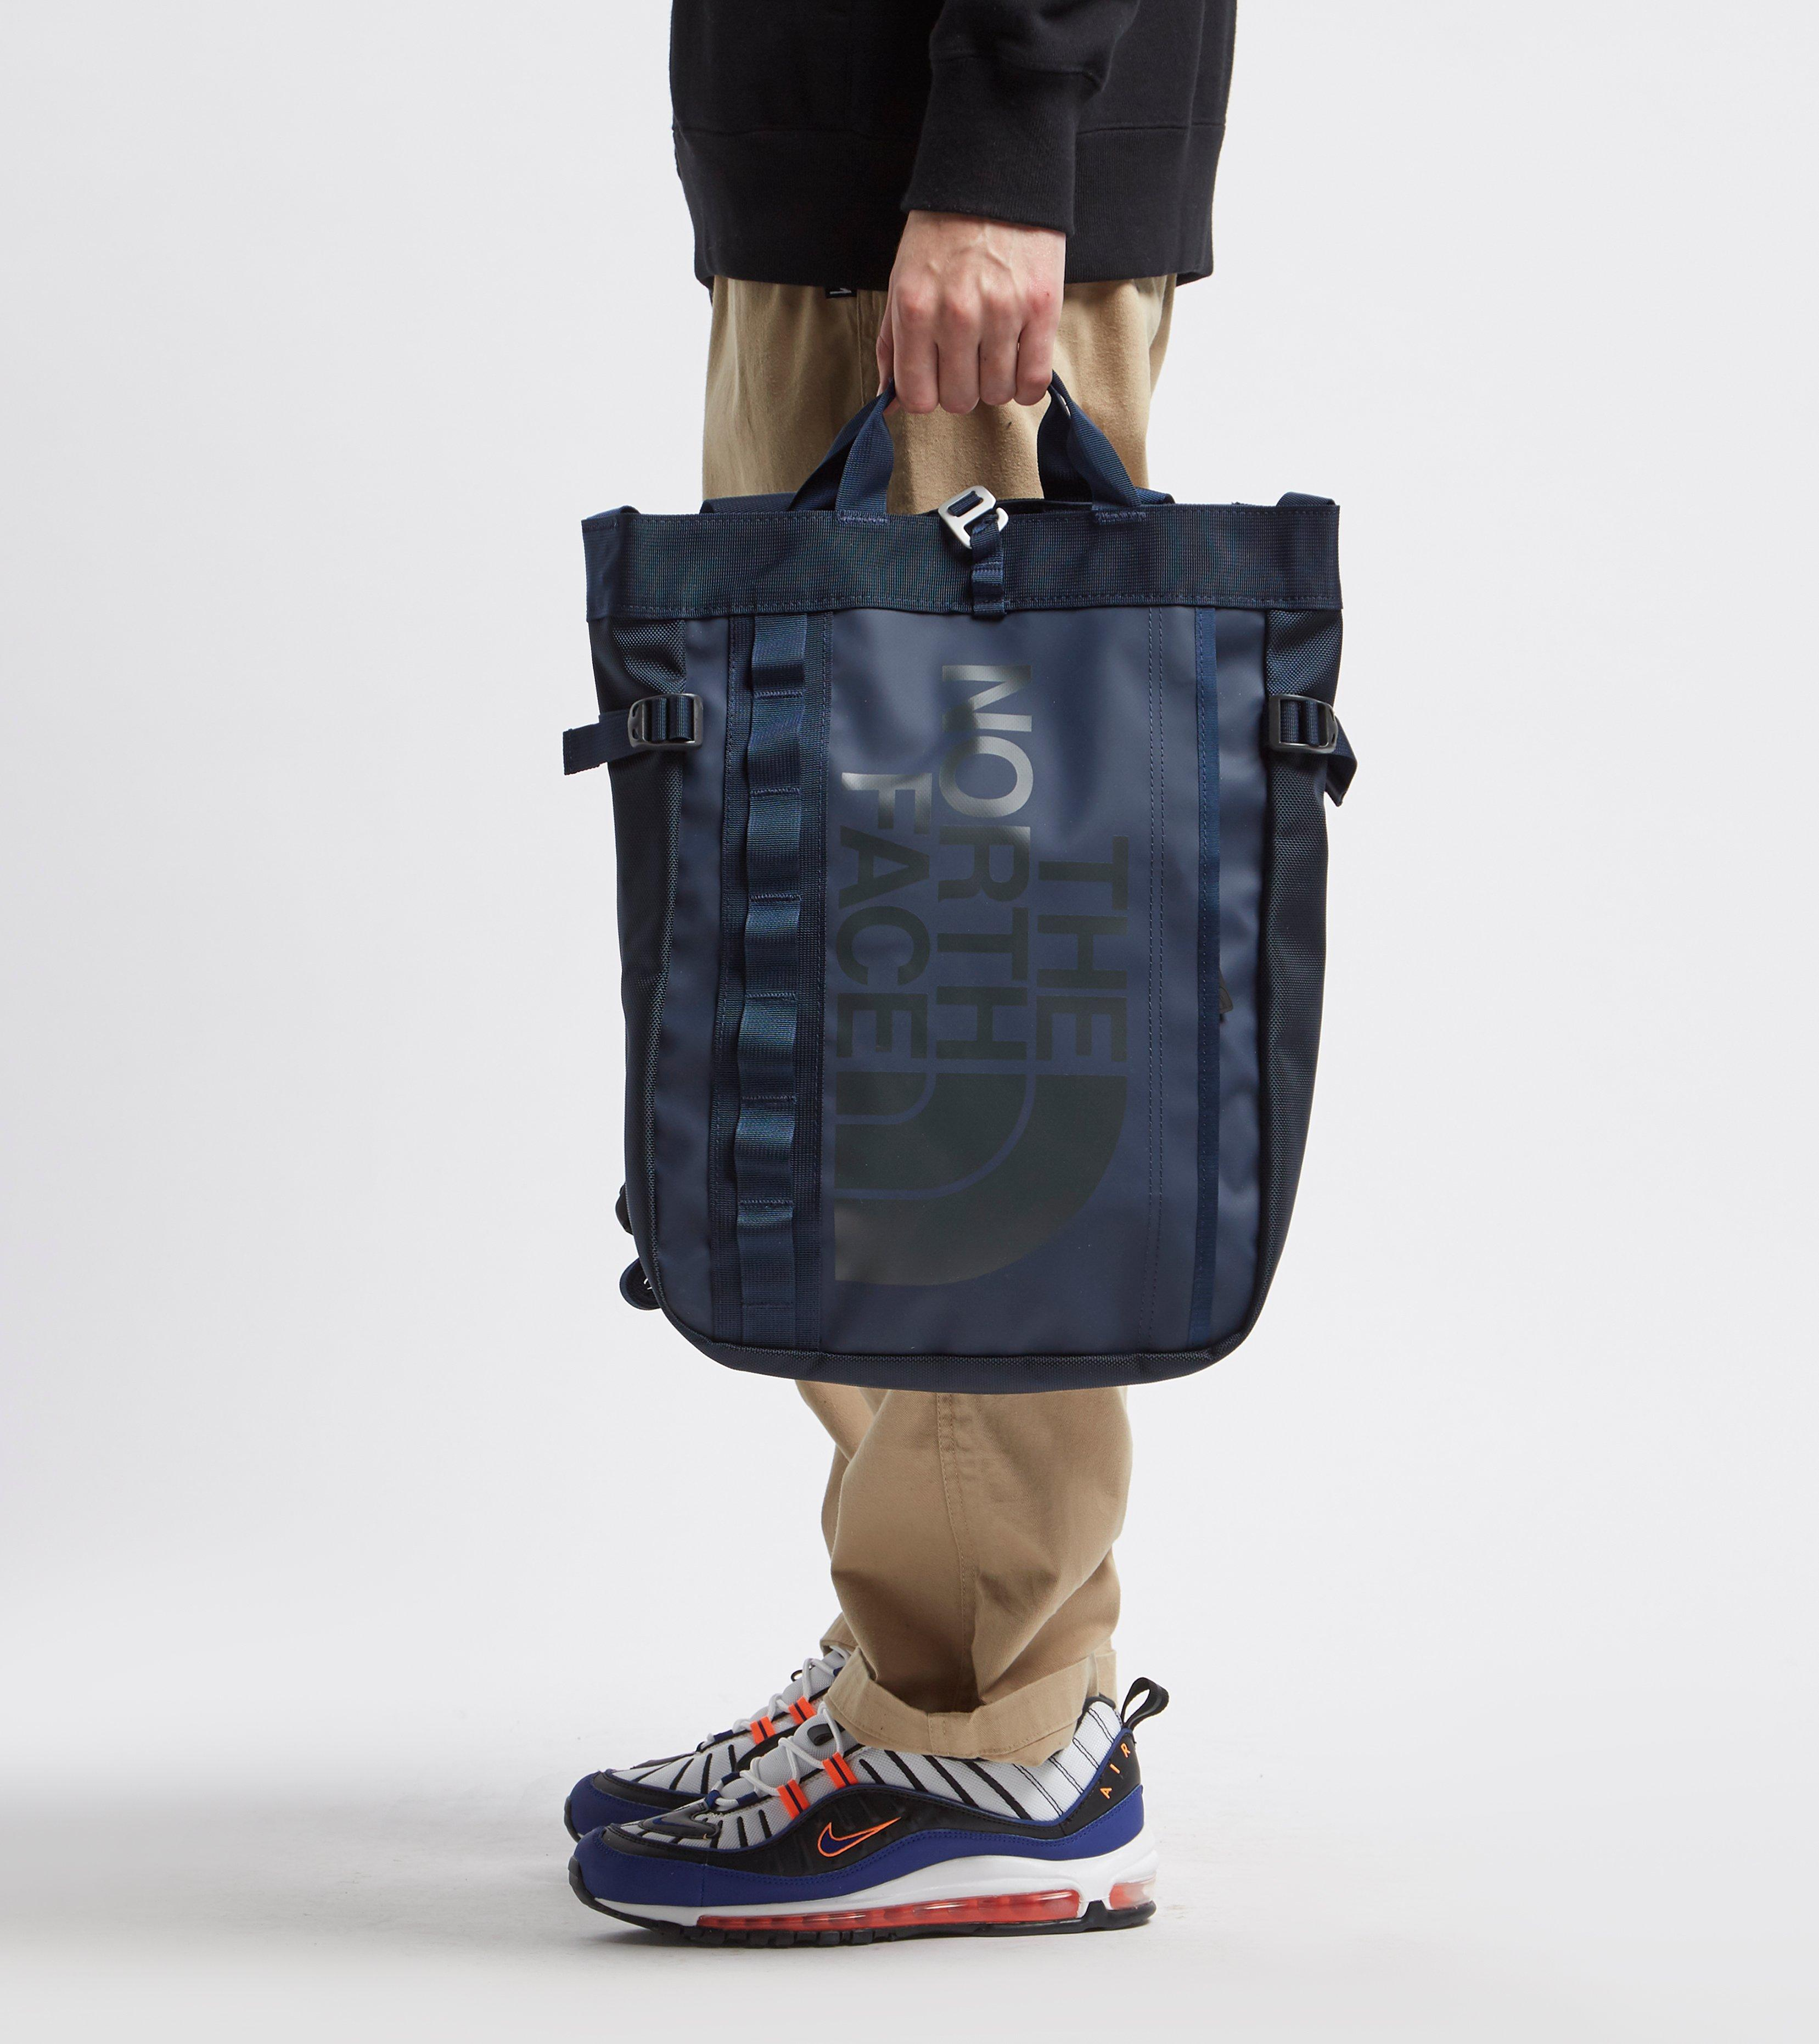 the north face basecamp fuse box tote bag size north face fuse box size [ 3314 x 3723 Pixel ]